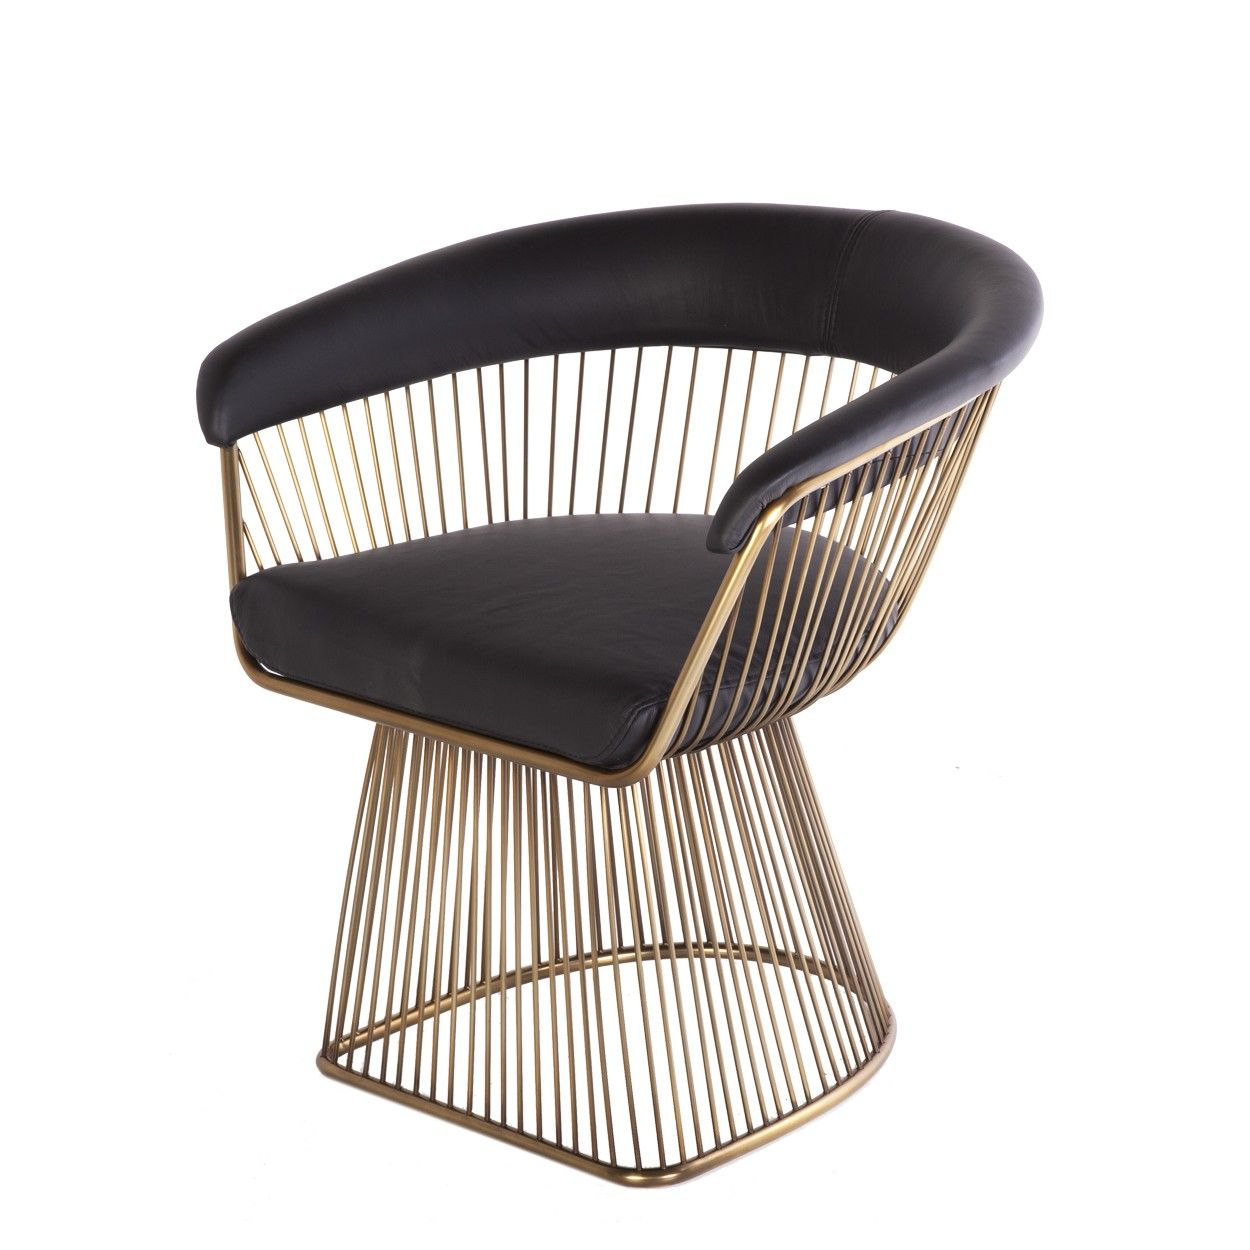 Dining Arm Chairs Black platner arm chair - black leather and gold | mid-century modern